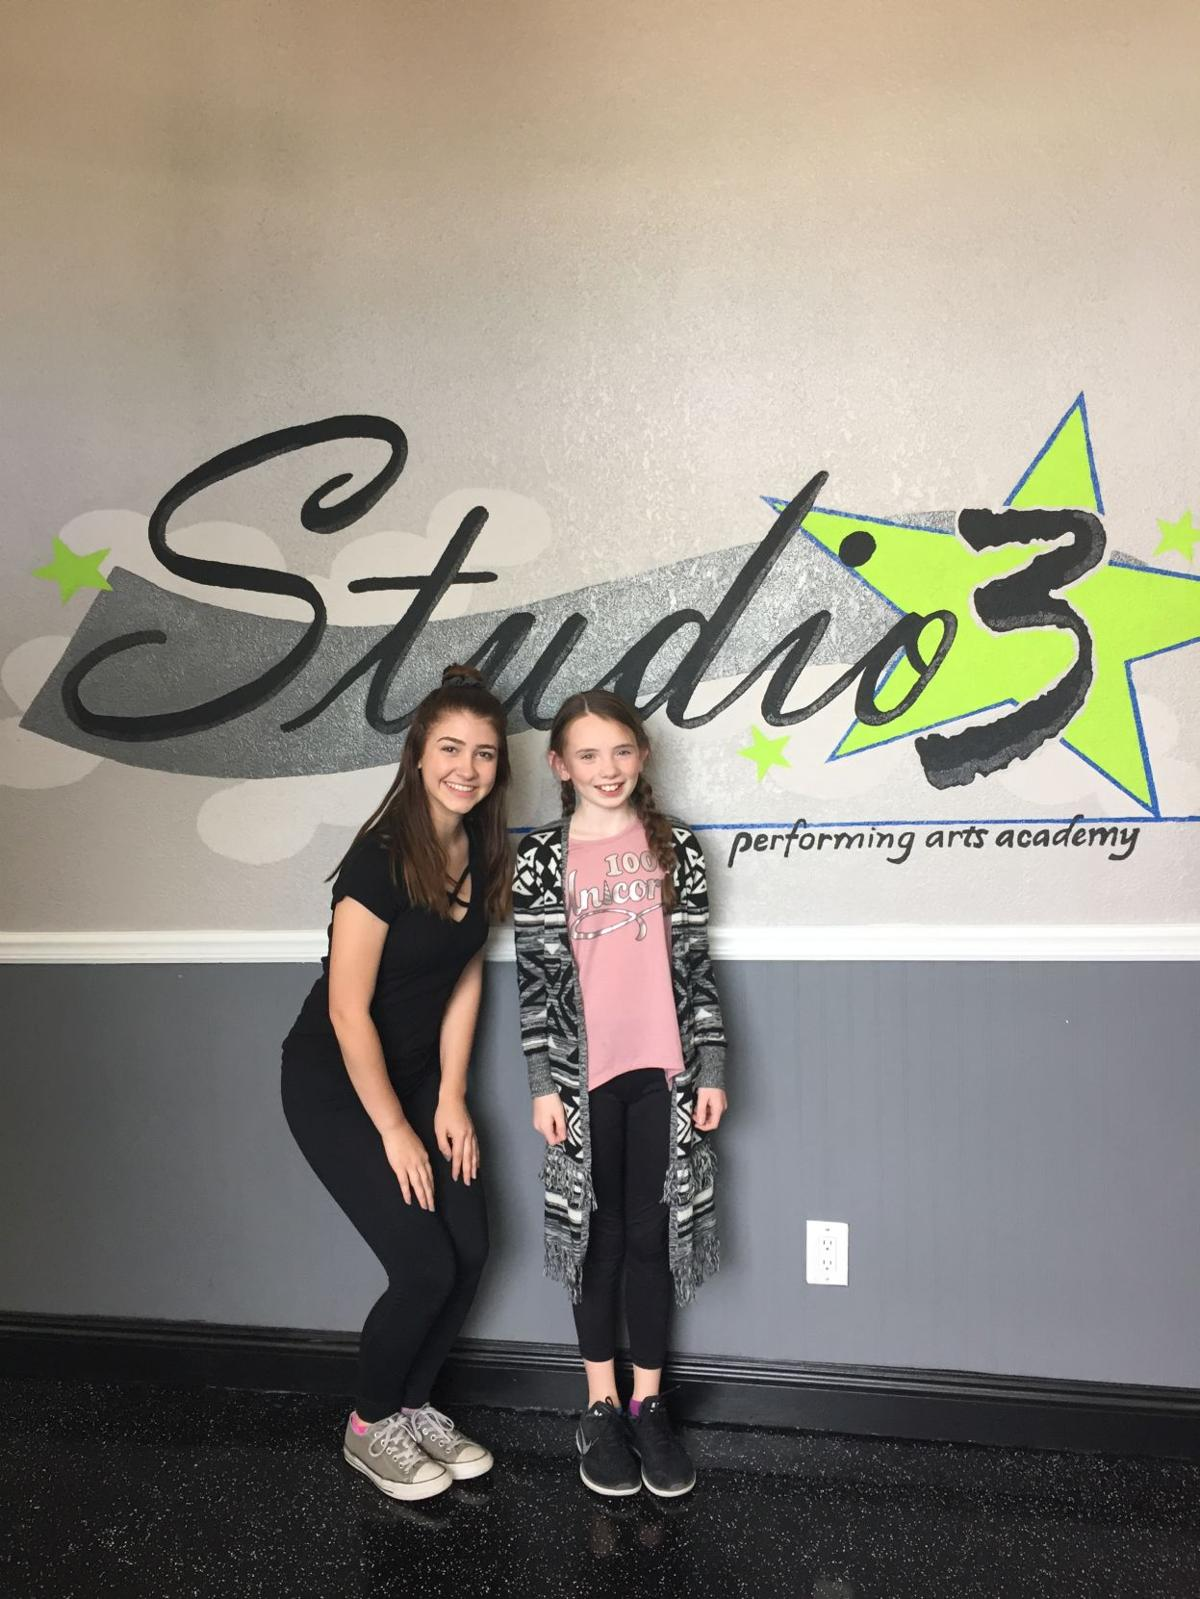 """Jessica Montecalvo, left, and Ciara Bogan of Ahwatukee have roles in the Limelight Theater production of """"The Sparrow."""""""